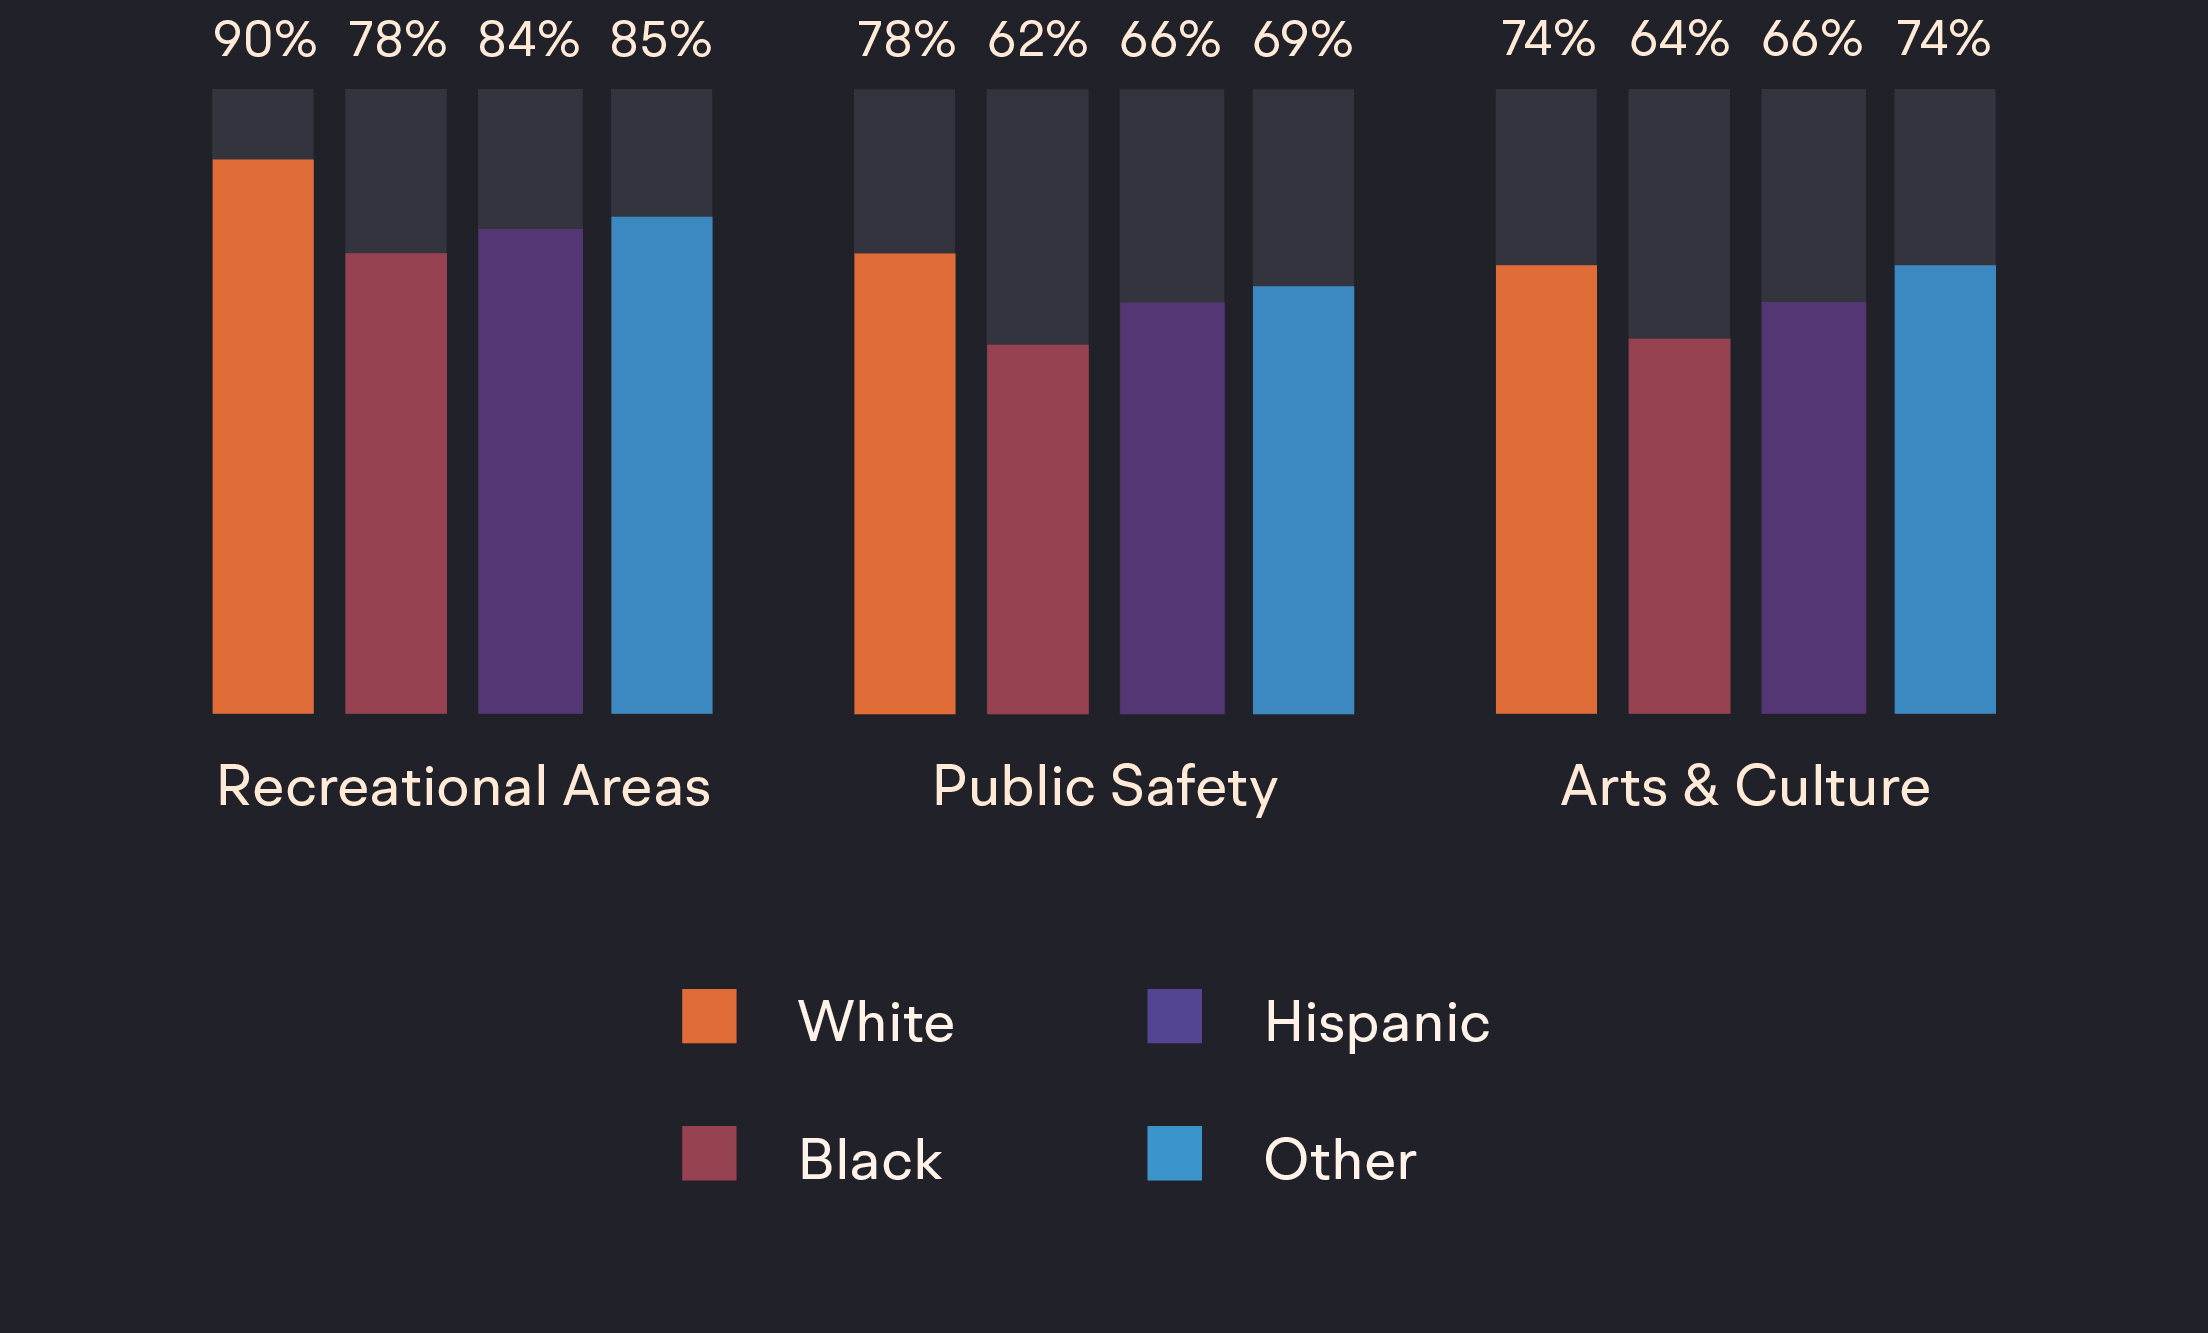 A chart showing how different racial groups have different access to recreational areas, safe spaces, and arts programs. White individuals are more likely to have access to these features of a city than non-Whites.